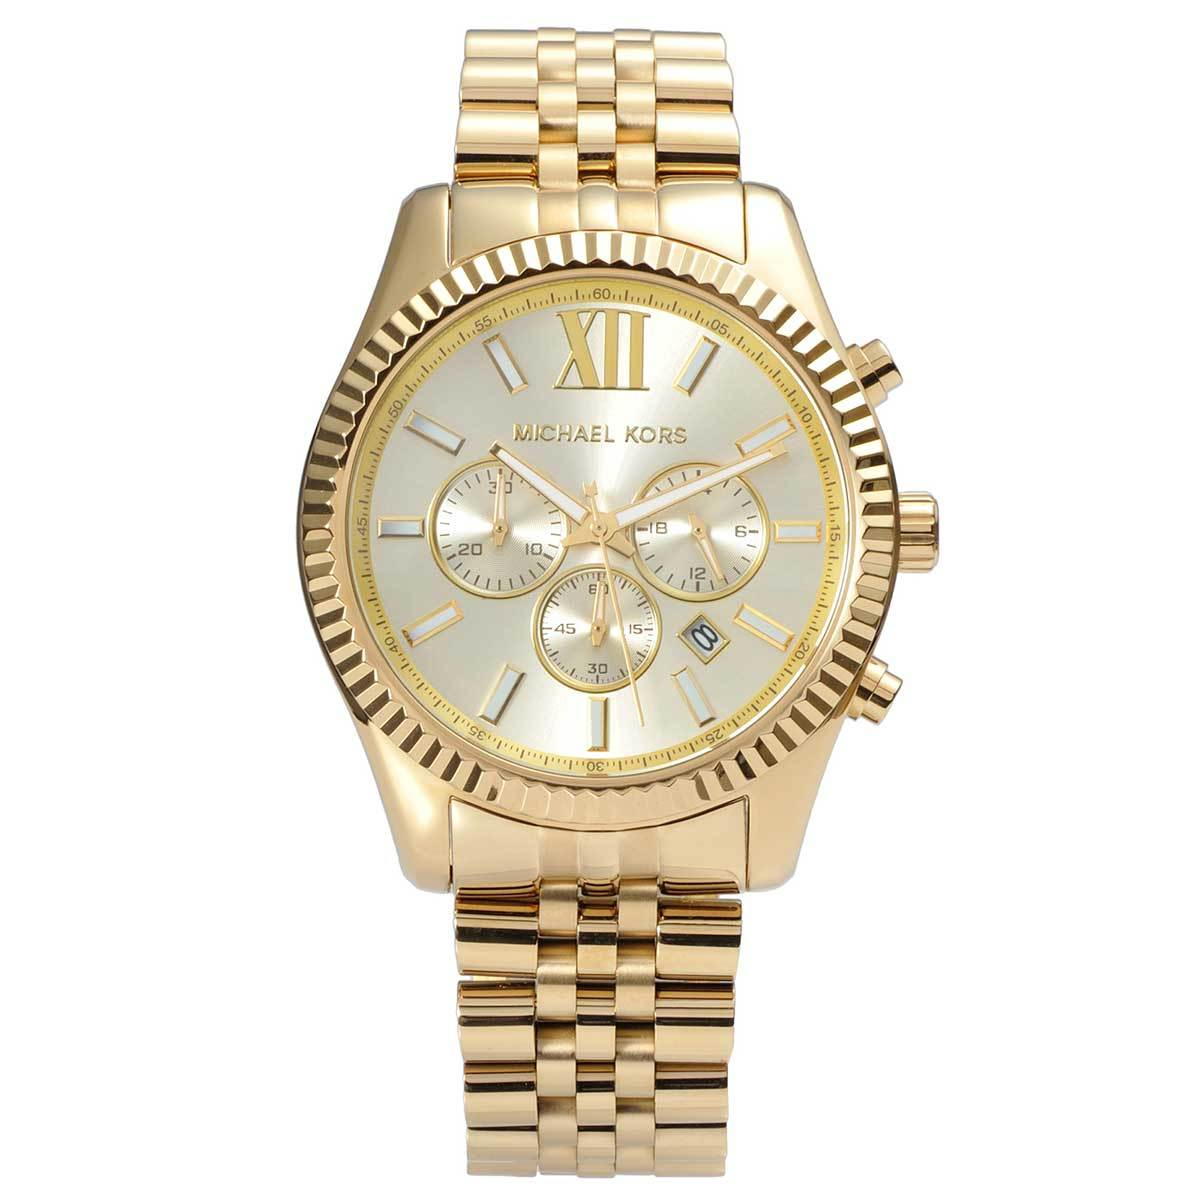 99c206e3bdf0 Details about Michael Kors MK8281 Gold Tone Men s Lexington Chrono Watch -  2 Year Warranty